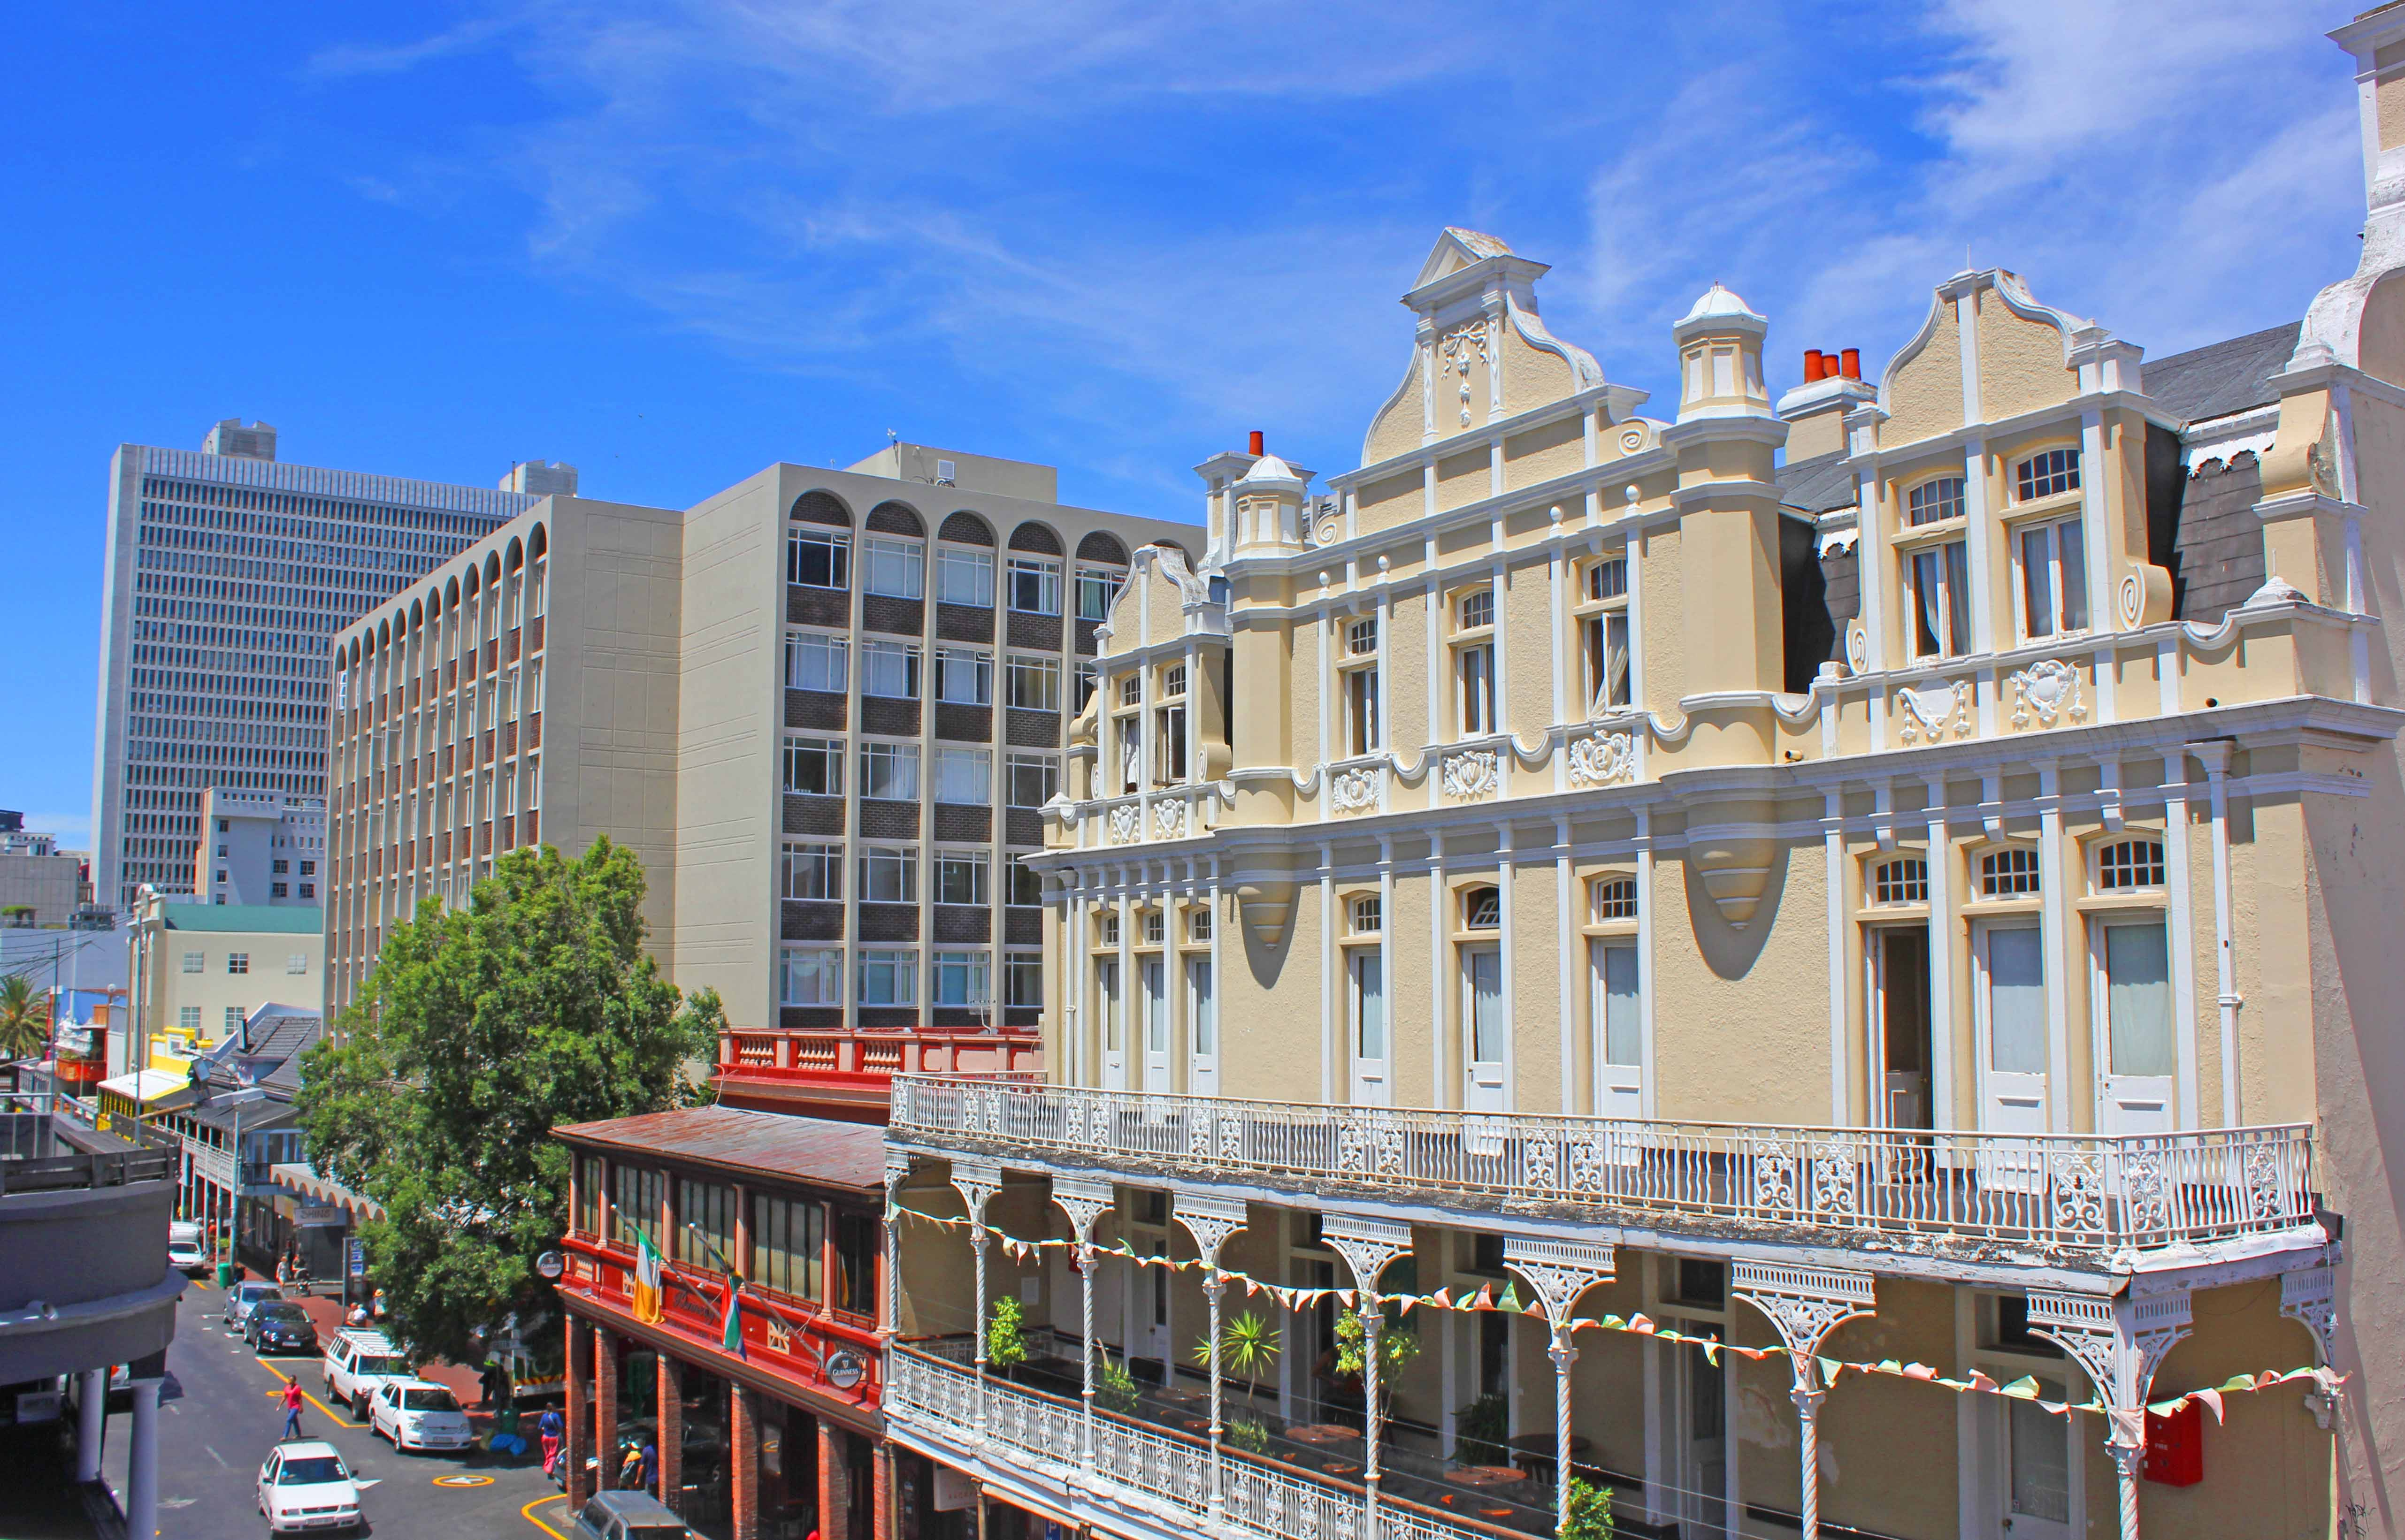 Long street hotel boutique hotel cape town for Hotel boutique hotel